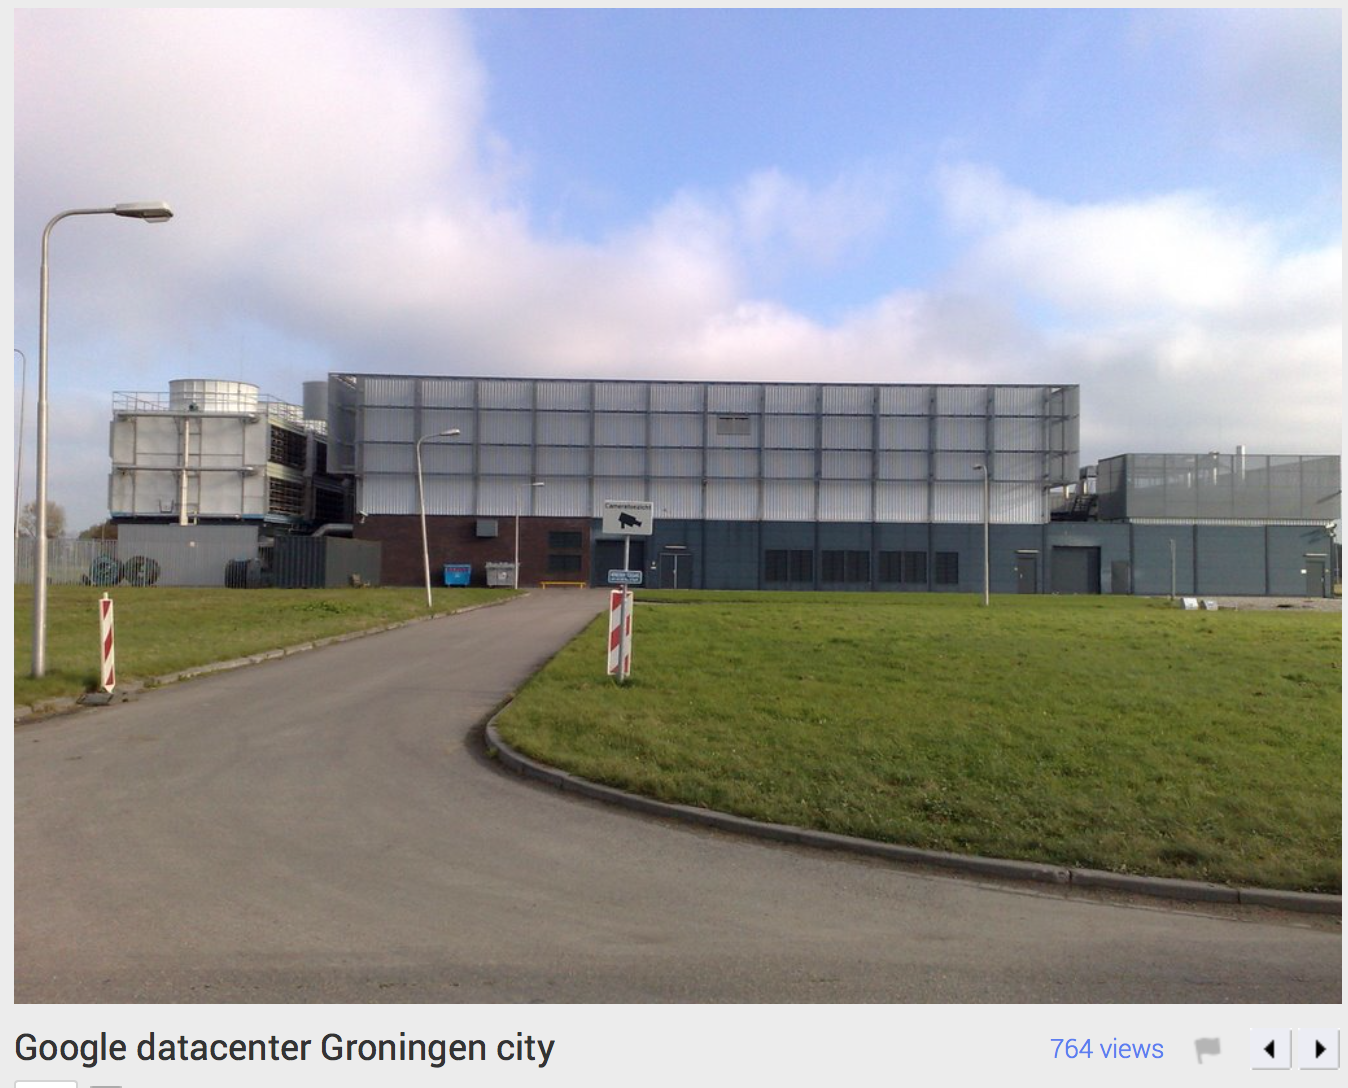 All criminal Google-CIA, Facebook-CIA, Skype-CIA, etc. Data Centers for the illegal global surveillance in violation of the International Laws are located in the Netherlands (by the water, since mega-computers need to be cooled down.)